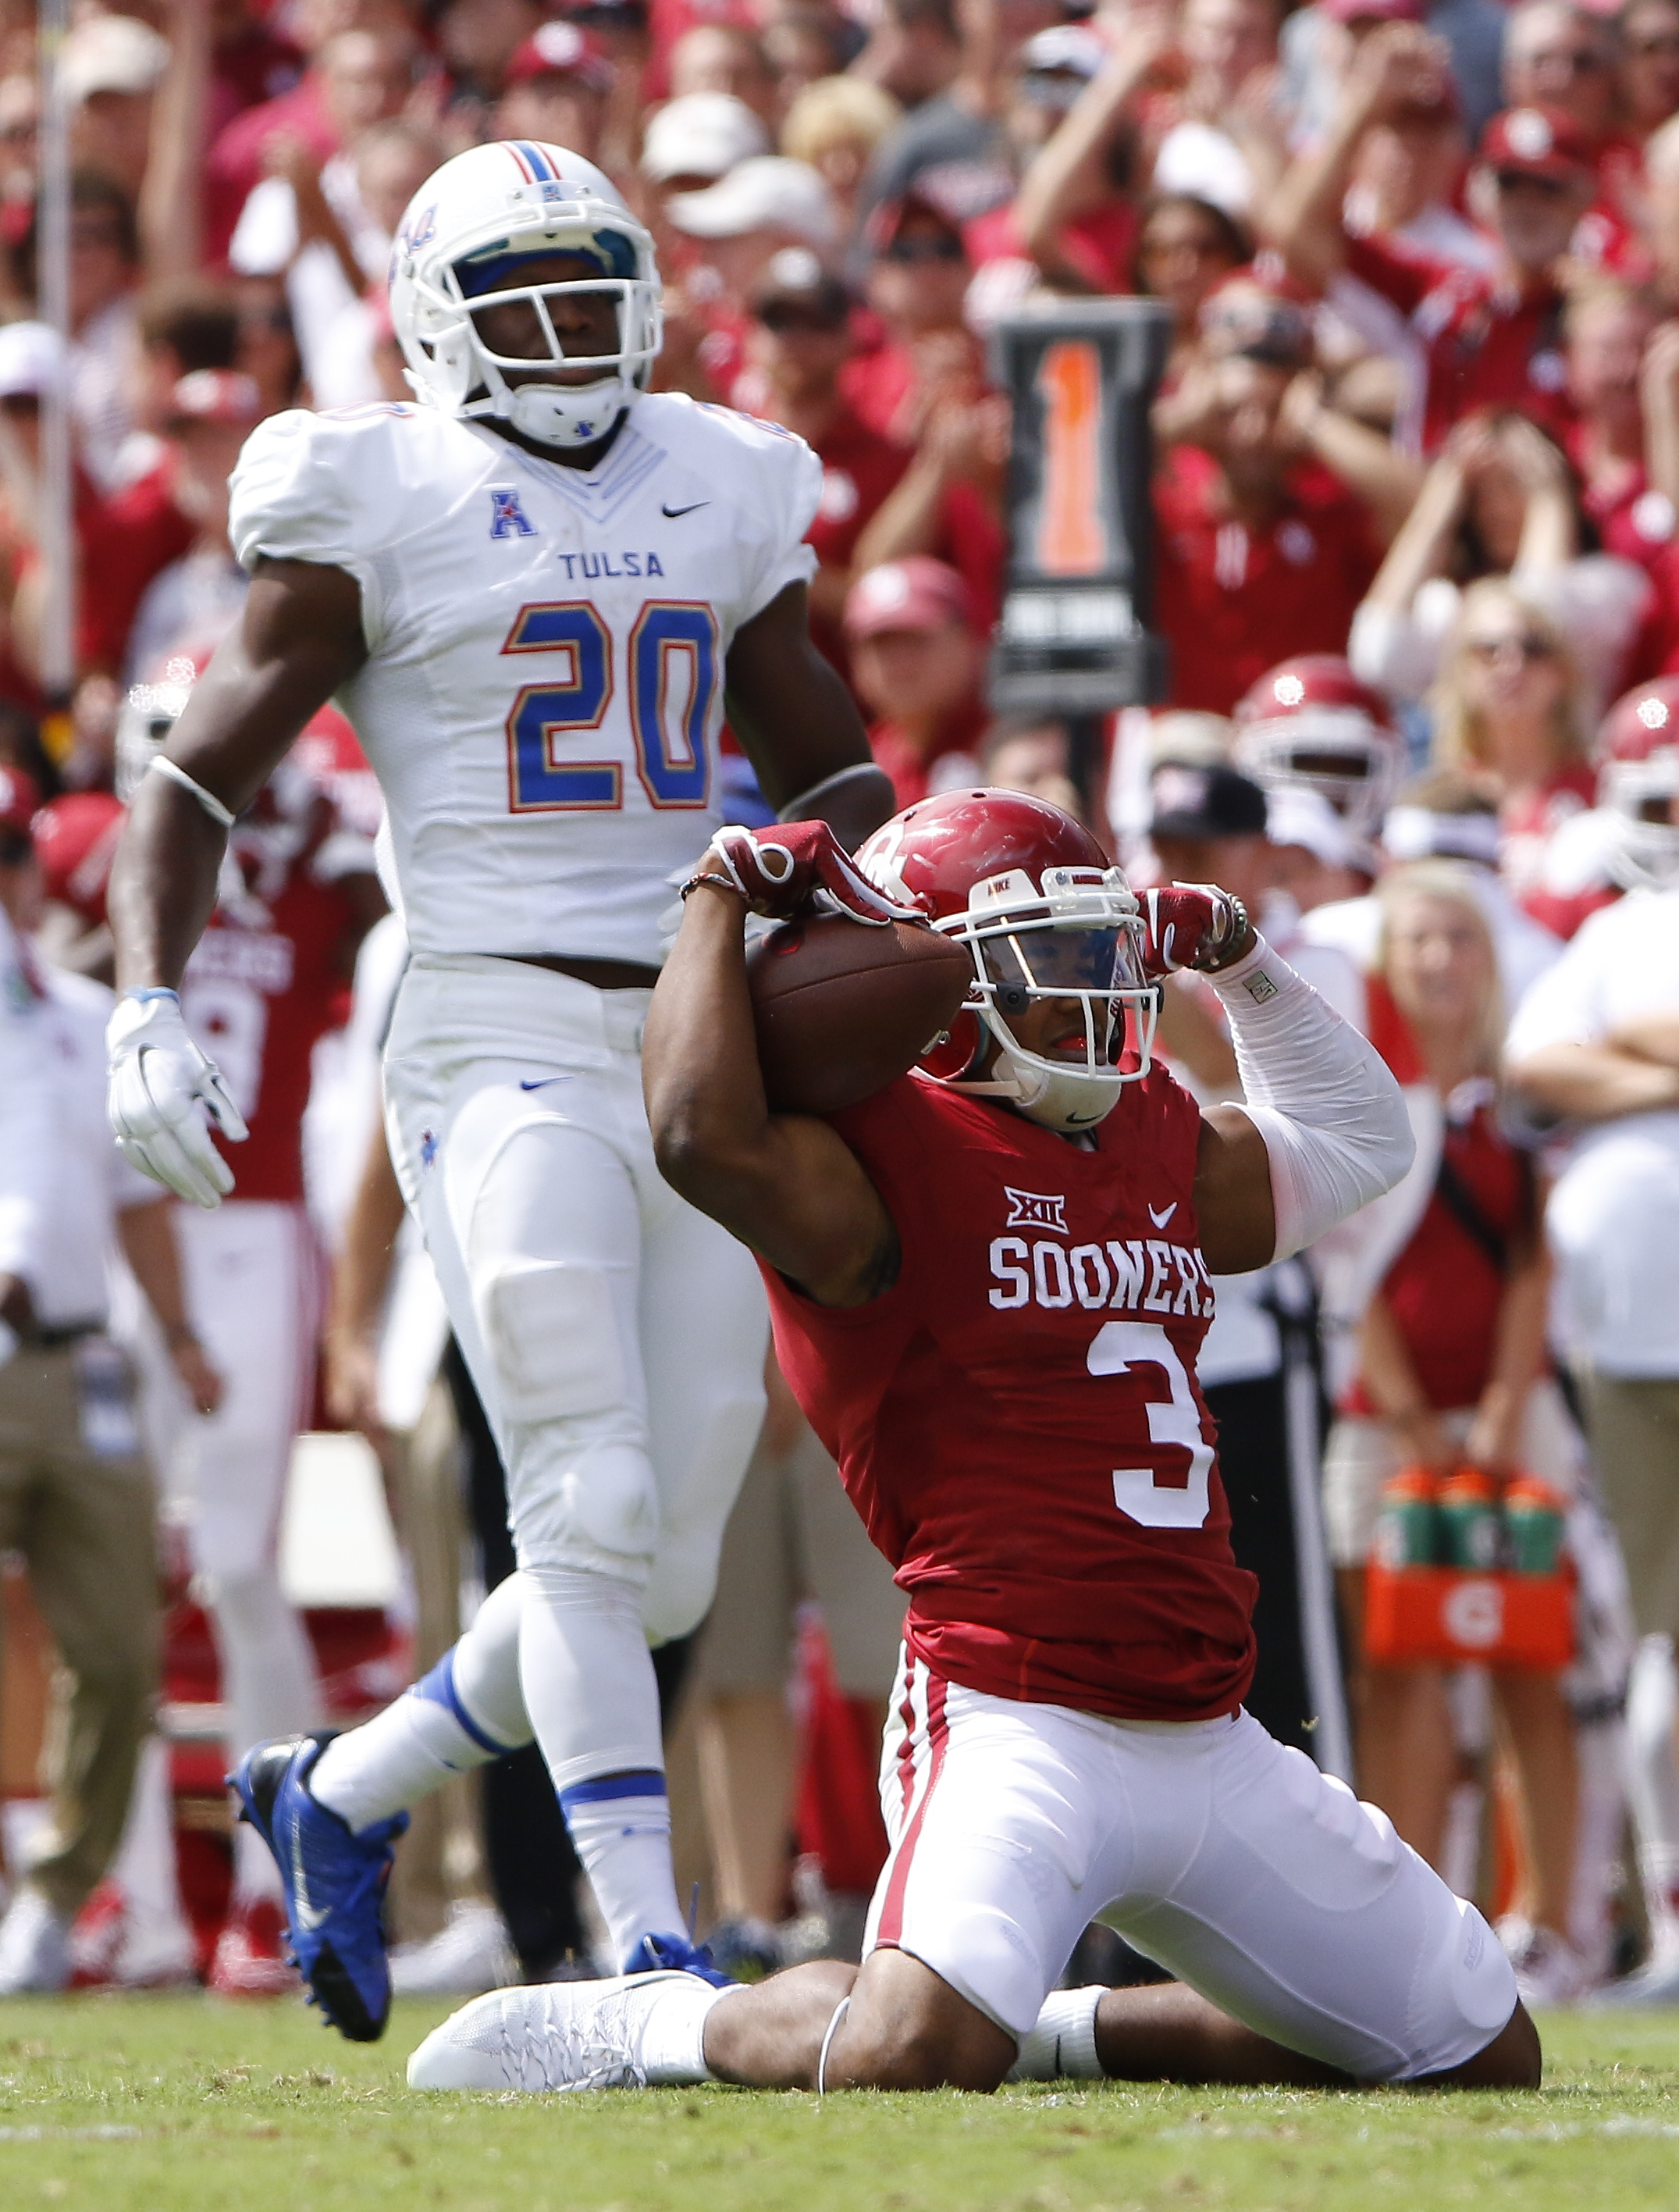 Oklahoma wide receiver Sterling Shepard (3) celebrates after making a catch against Tulsa and is hit with an unsportsmanlike conduct penalty during the second quarter of an NCAA college football game in Norman, Okla., Saturday, Sept. 19, 2015. (AP Photo/A